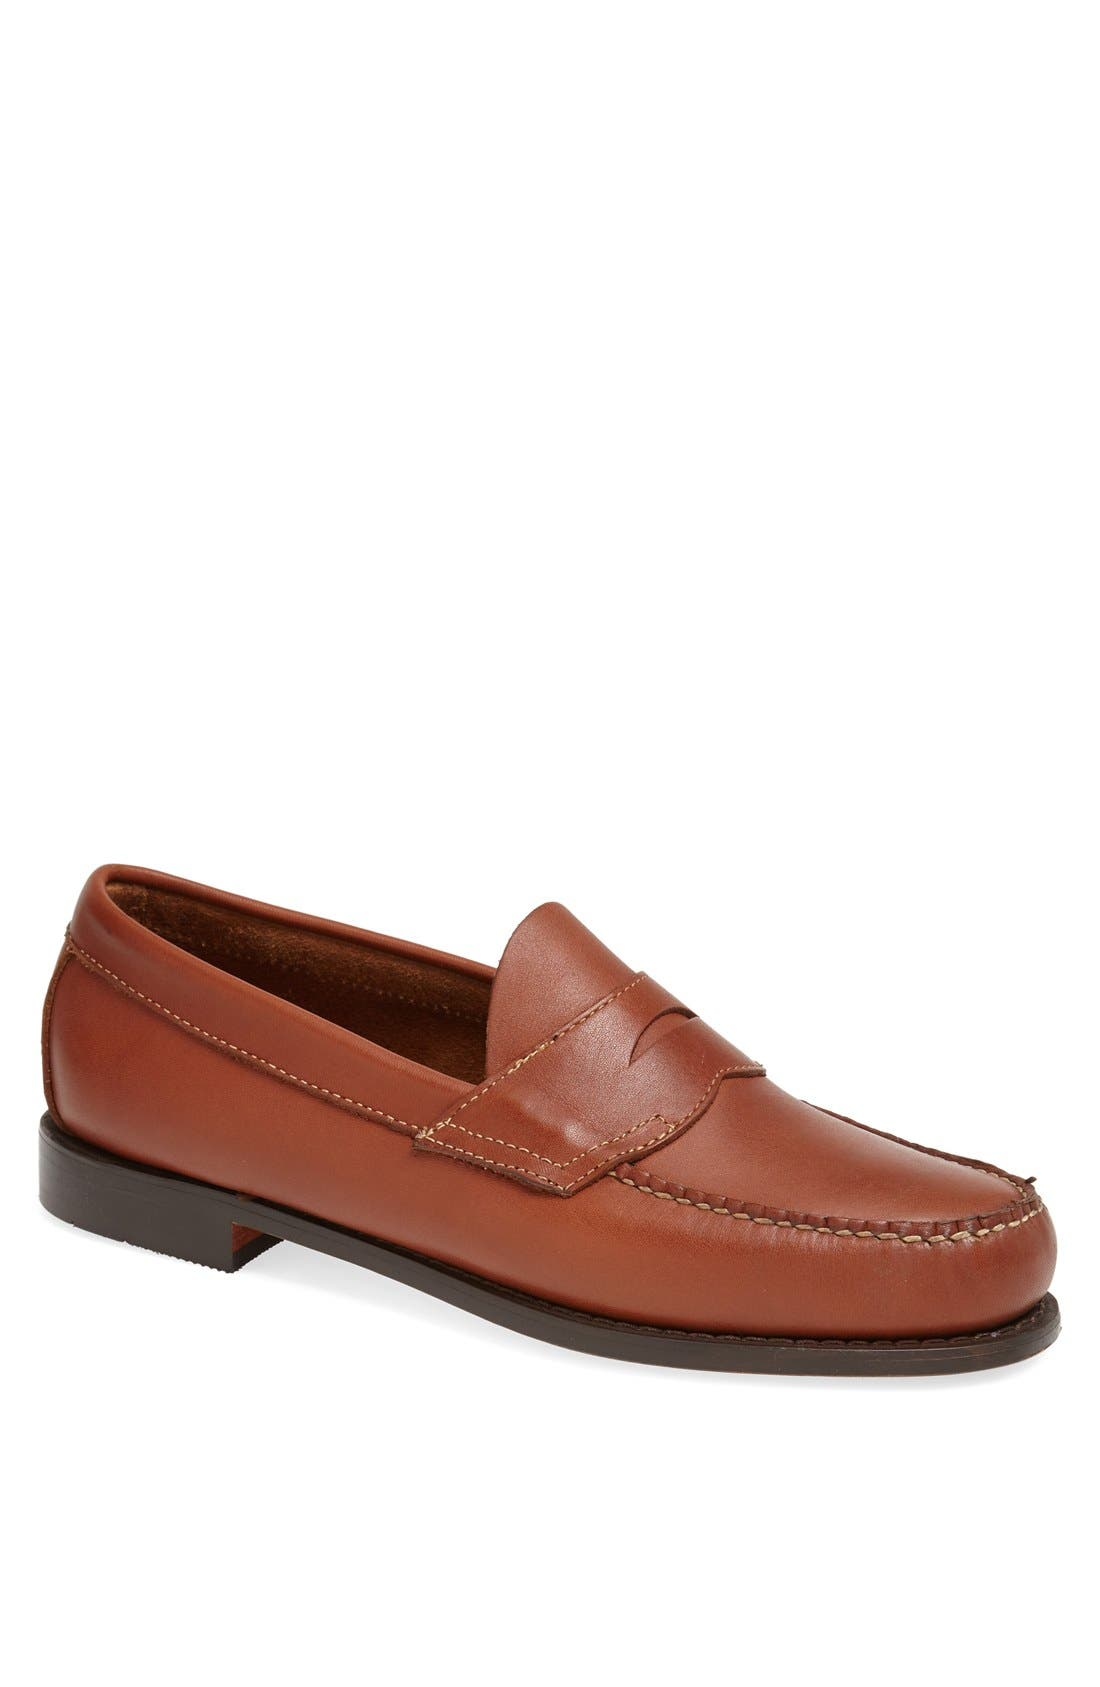 Main Image - G.H. Bass & Co. 'Logan' Penny Loafer